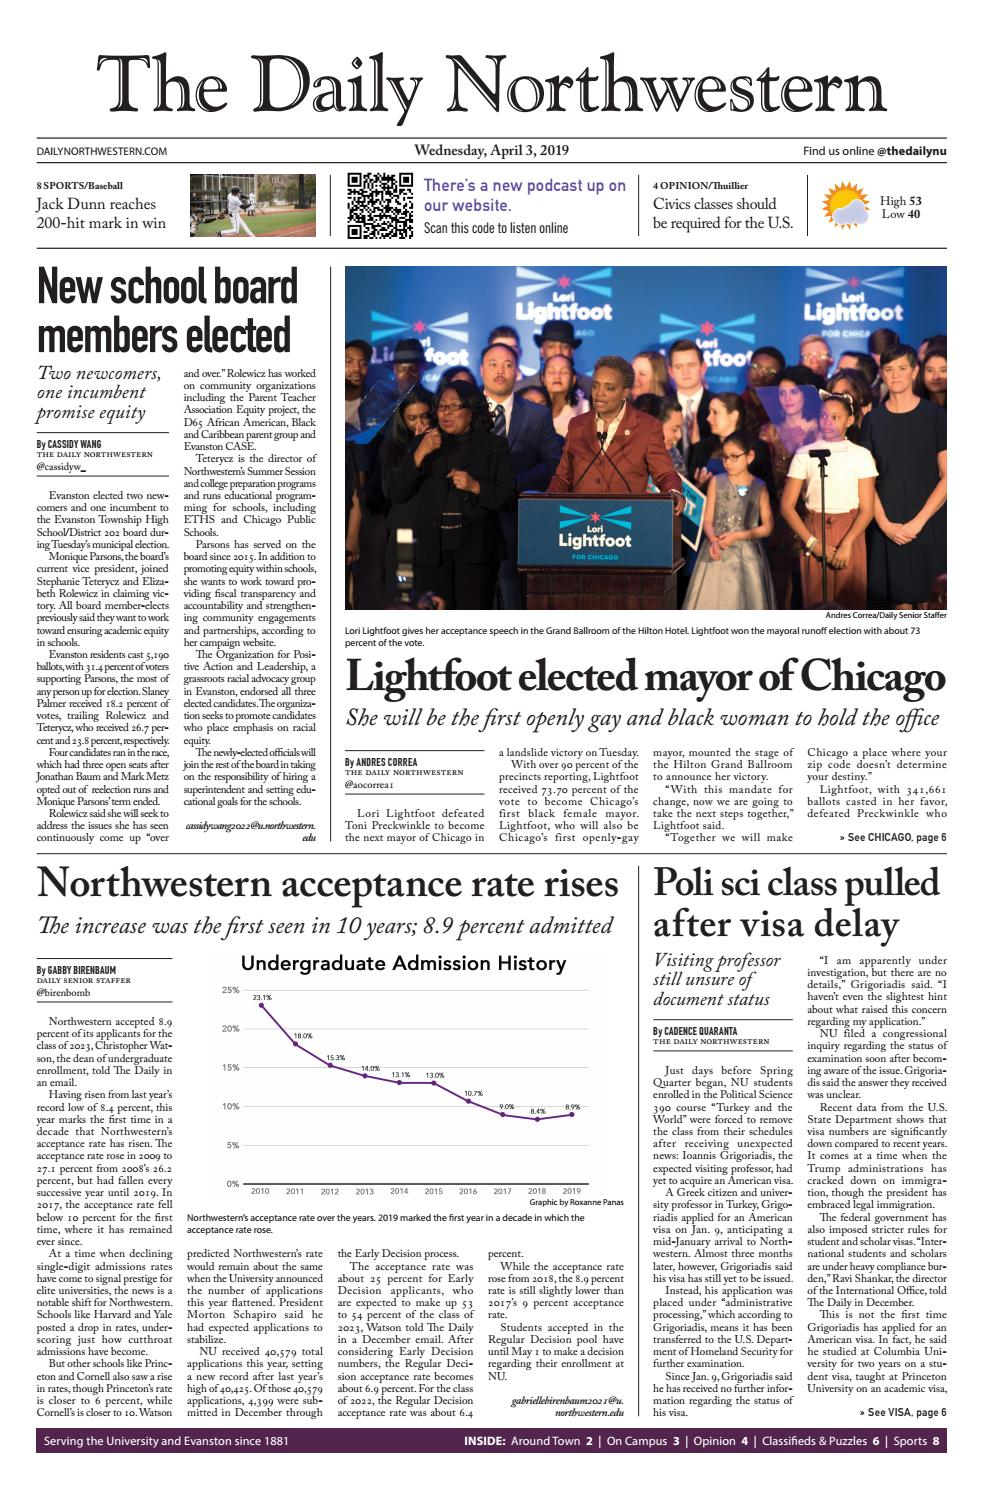 The Daily Northwestern – April 3, 2019 by The Daily